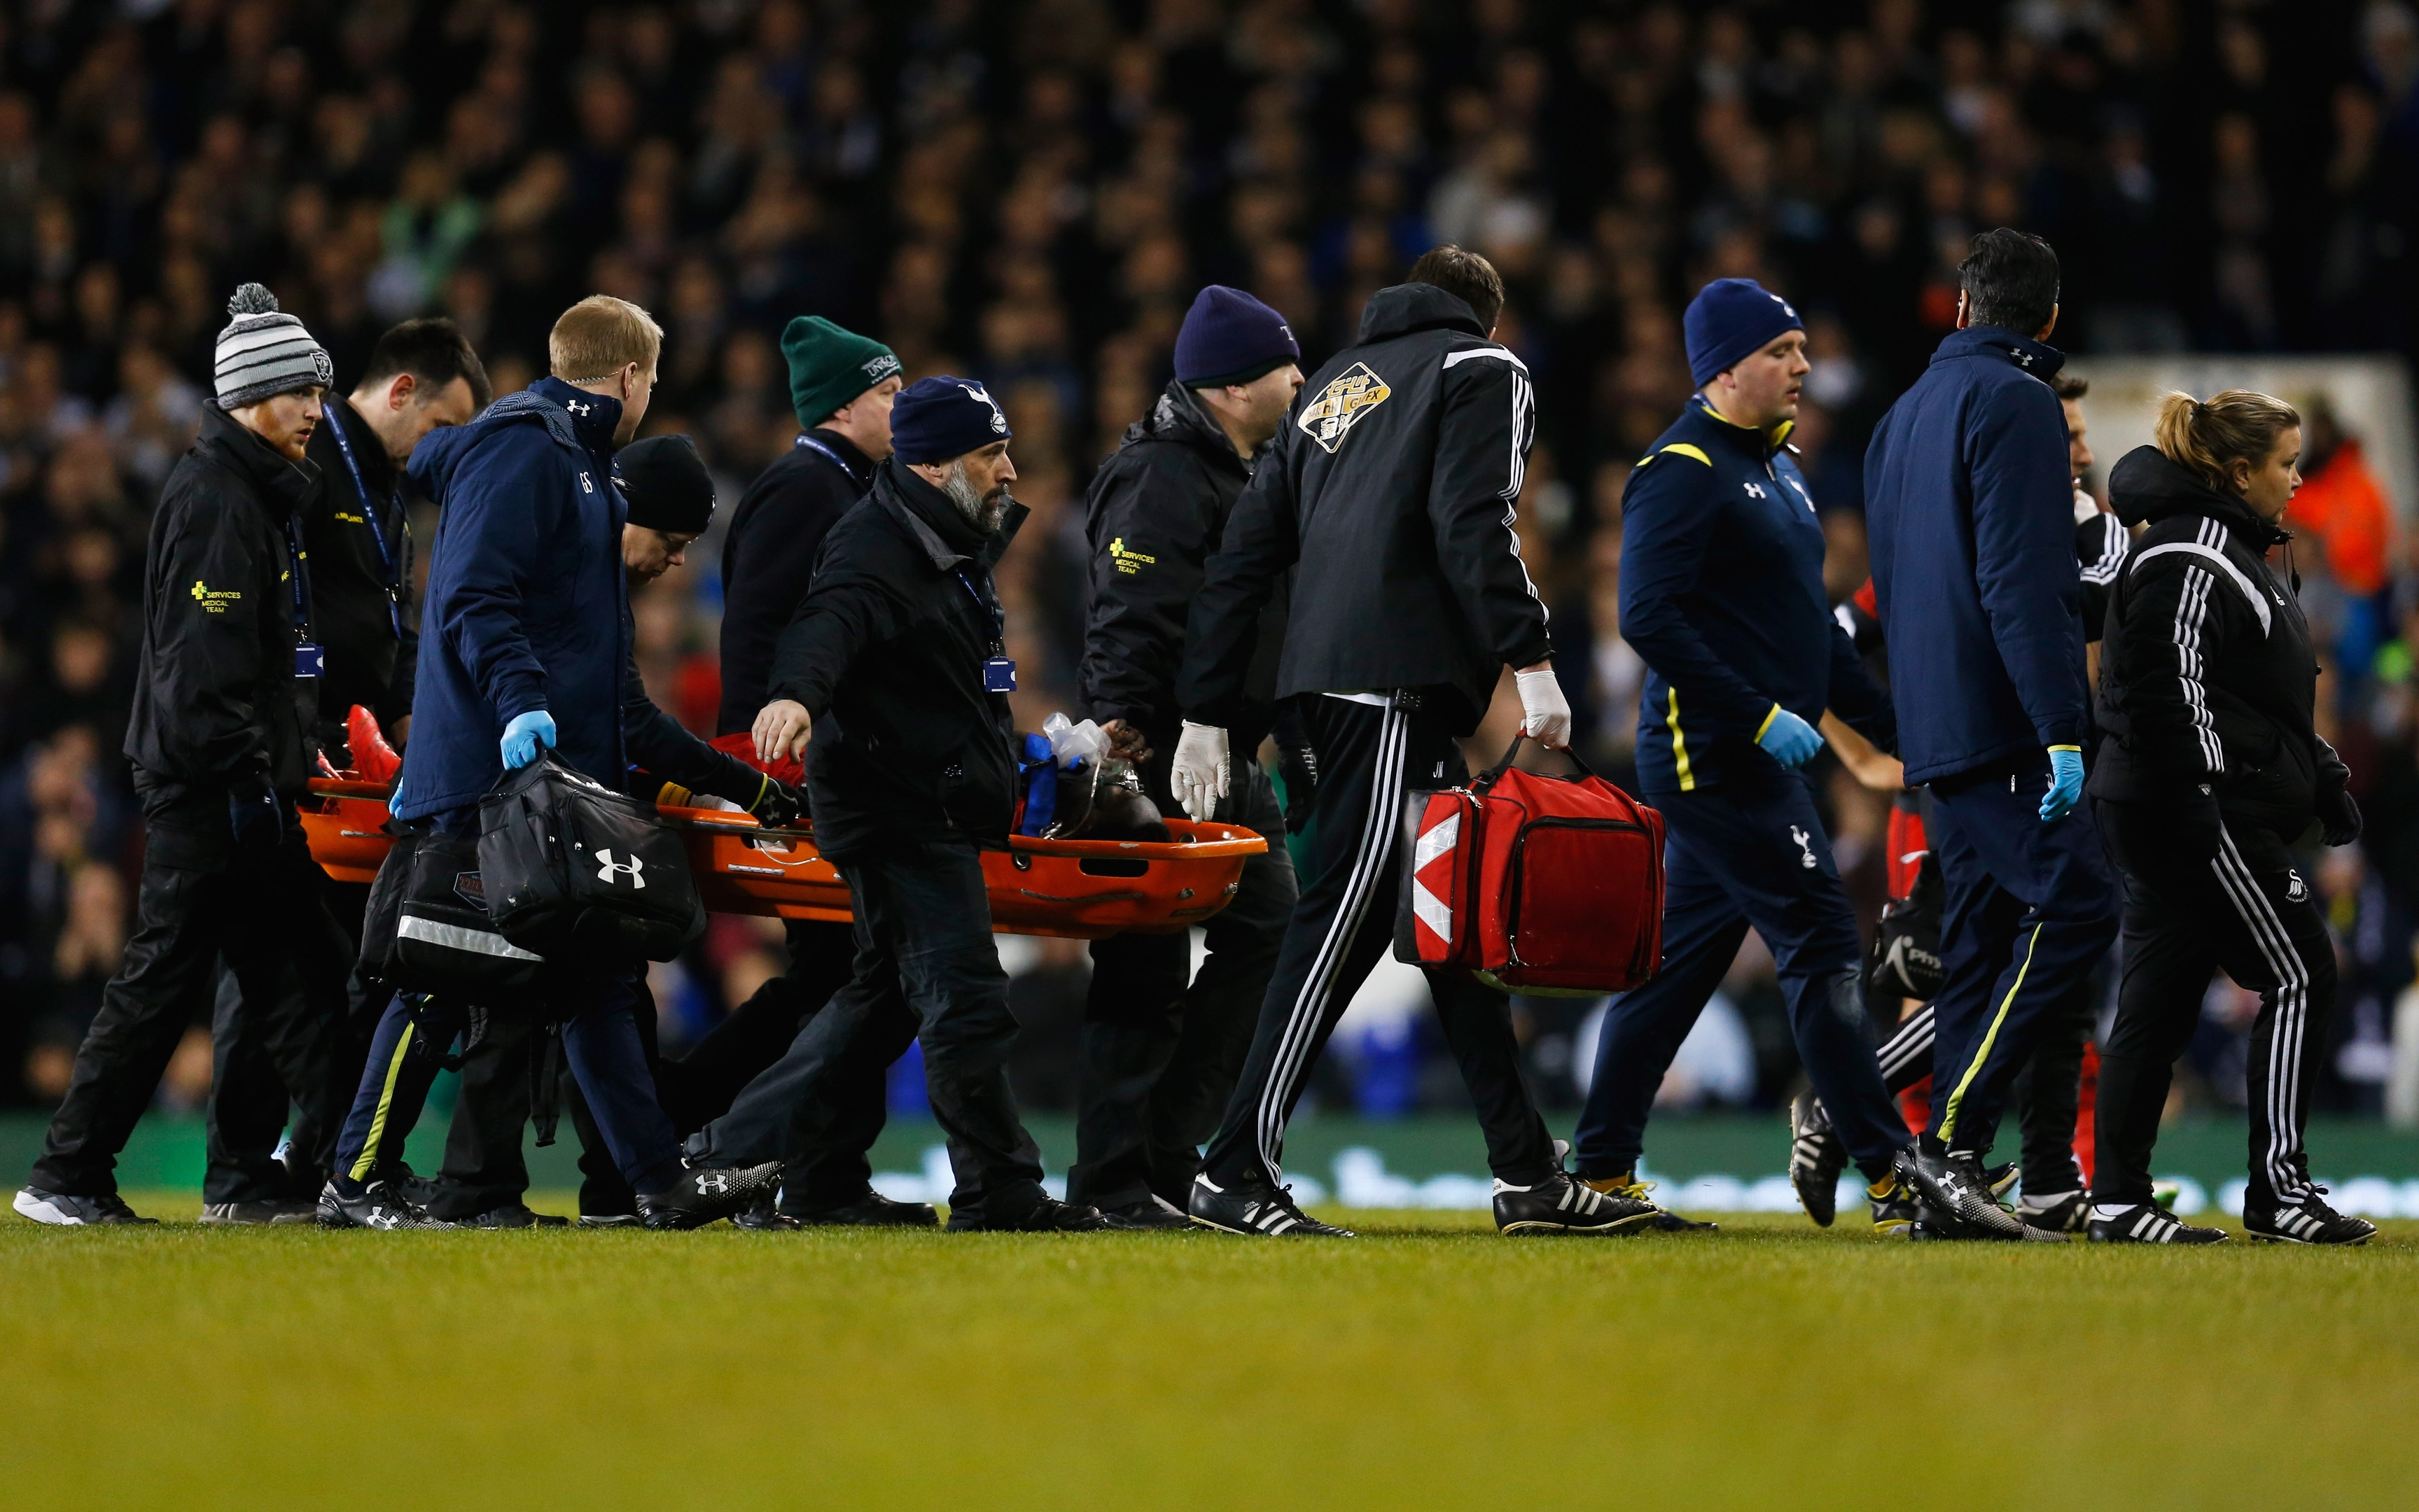 Bafetibis Gomis of Swansea City is stretchered off during the Barclays Premier League match between Tottenham Hotspur and Swansea City at White Hart Lane